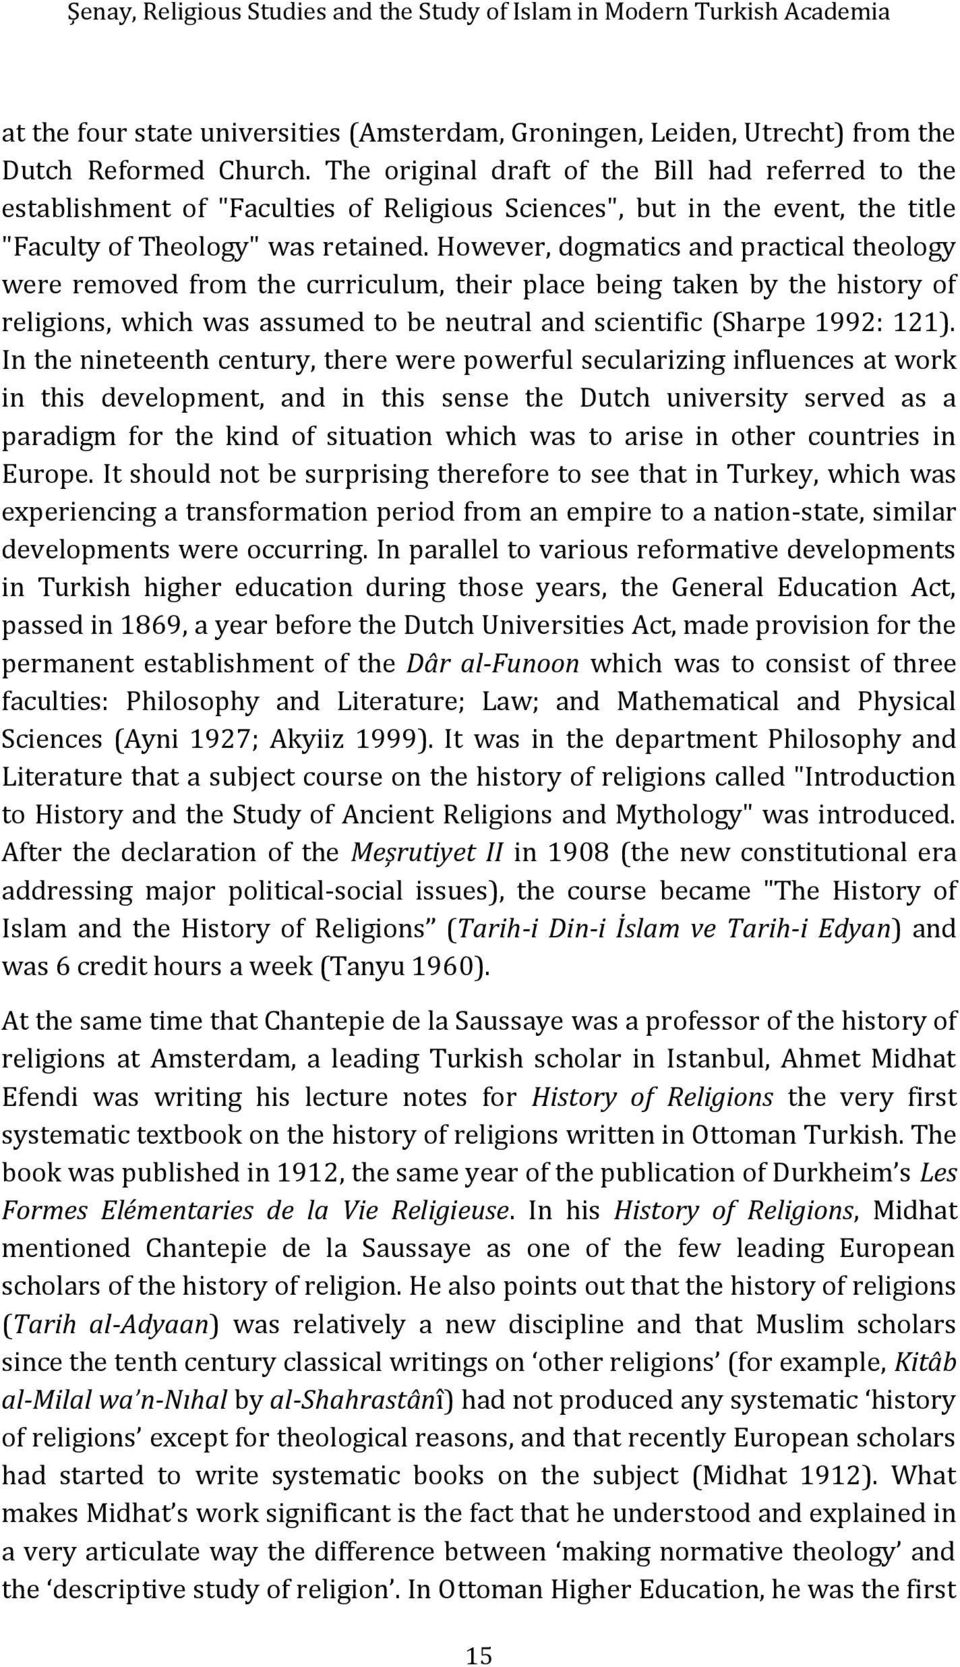 However, dogmatics and practical theology were removed from the curriculum, their place being taken by the history of religions, which was assumed to be neutral and scientific (Sharpe 1992: 121).